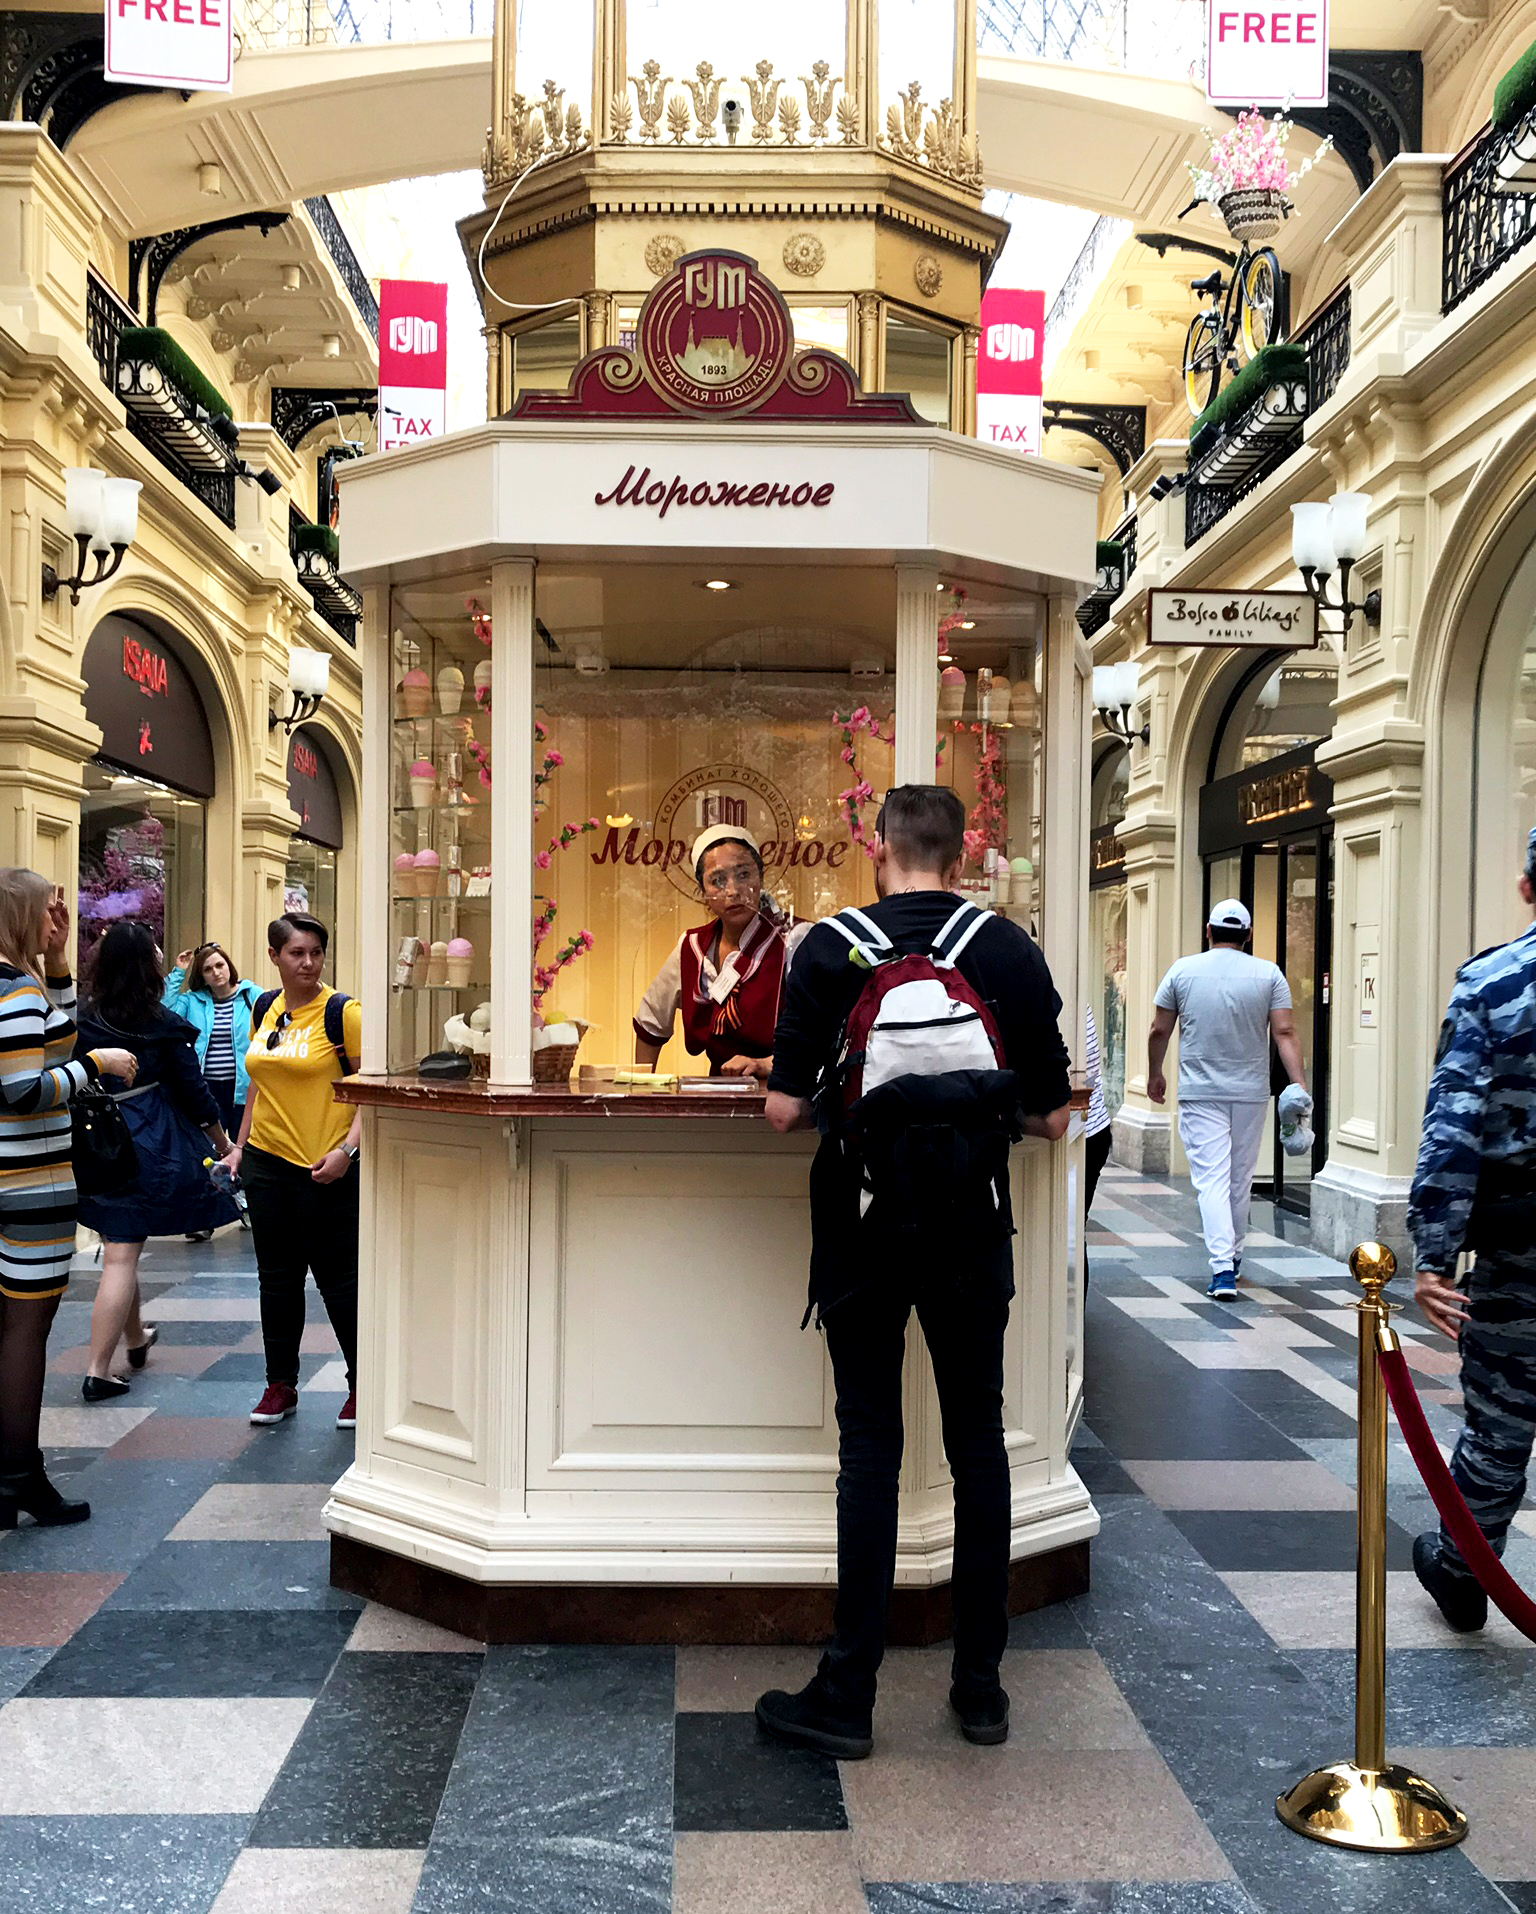 Ice cream kiosk inside Main Department Store. Photo by Alexa van Sickle.